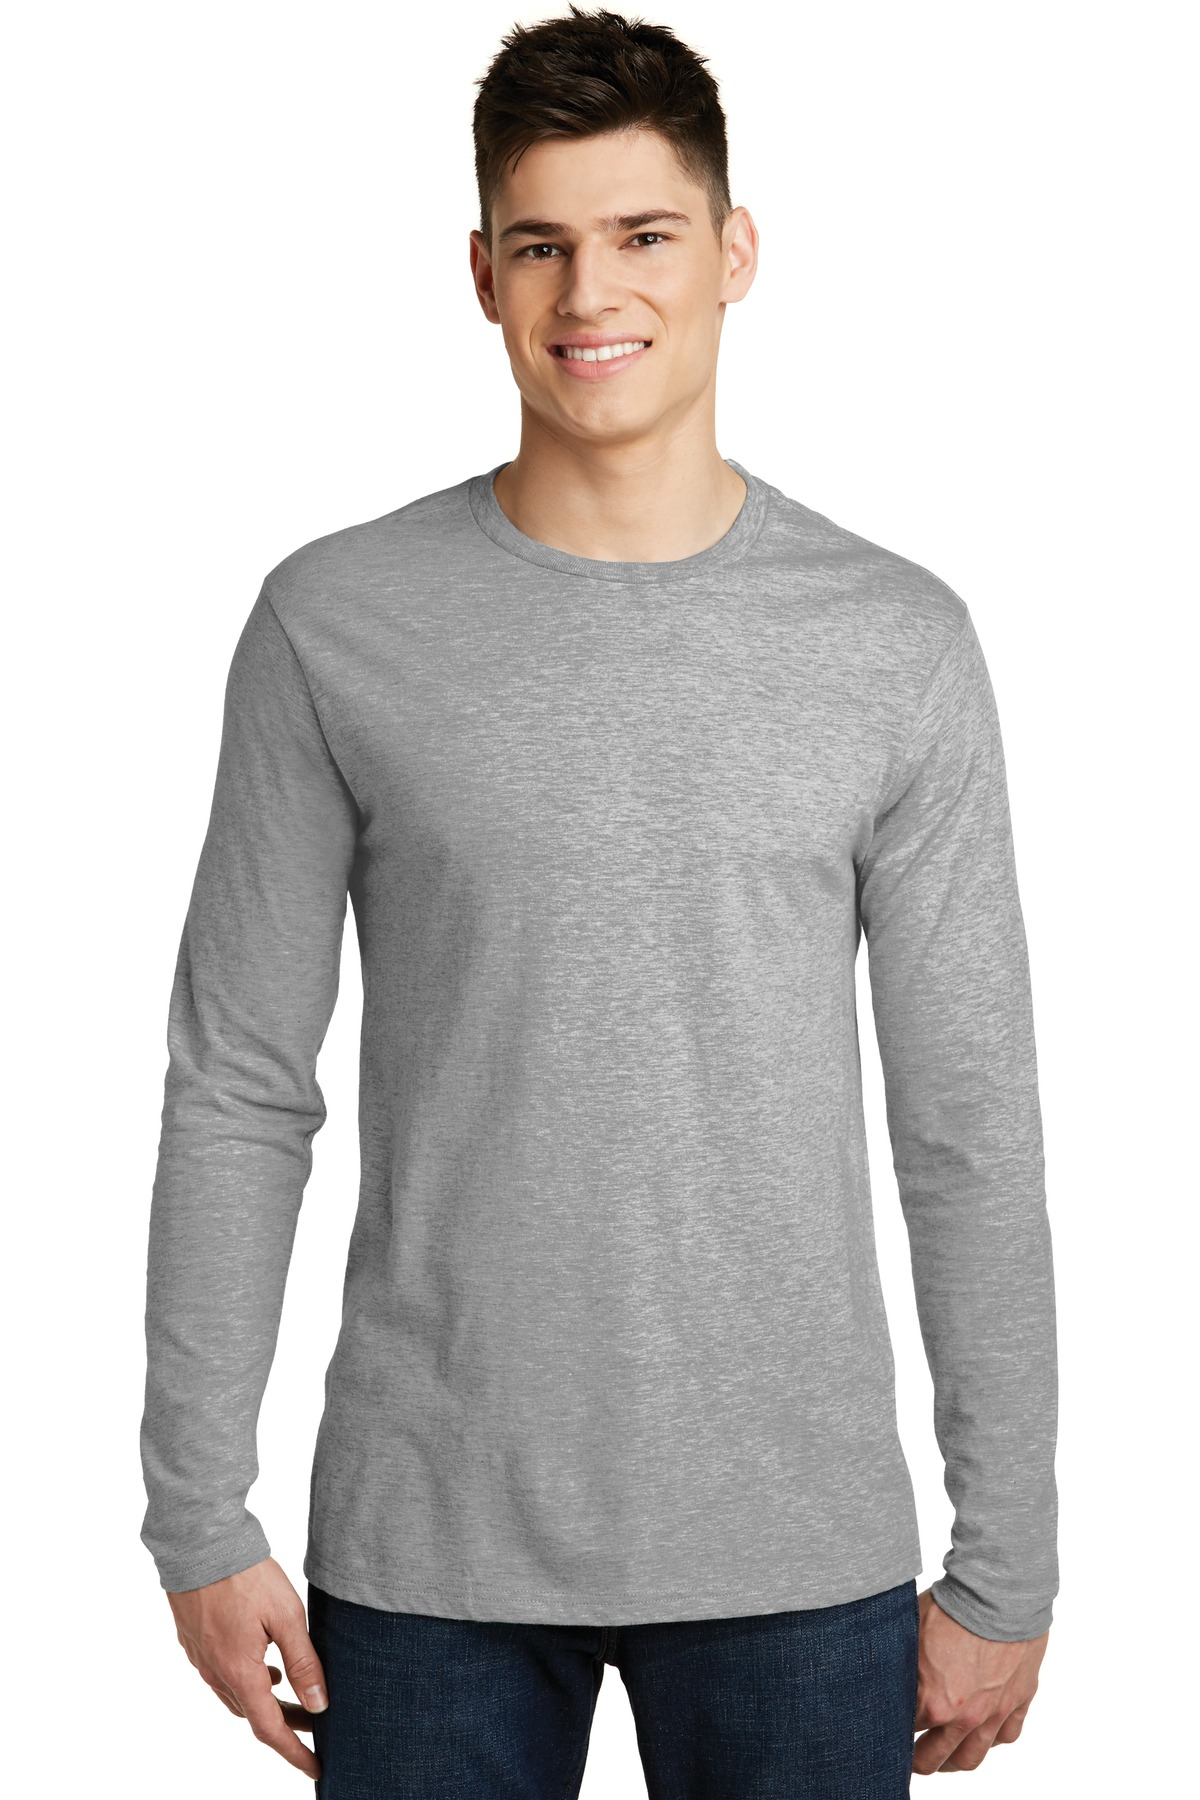 District ®  Very Important Tee ®  Long Sleeve. DT6200 - Light Heathered Grey